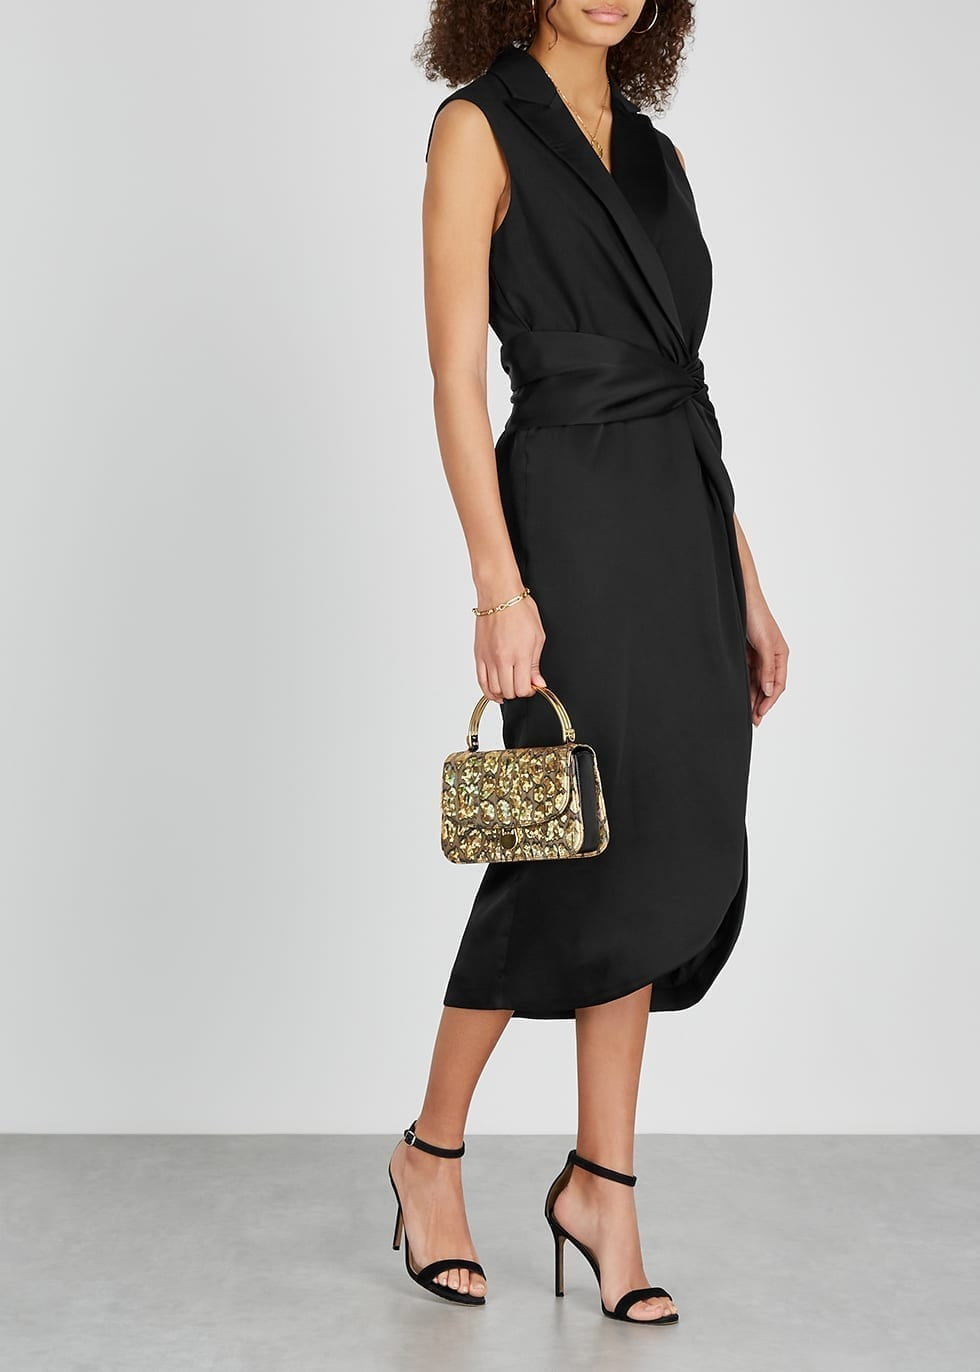 JONATHAN SIMKHAI Black Twist-effect Satin Midi Dress